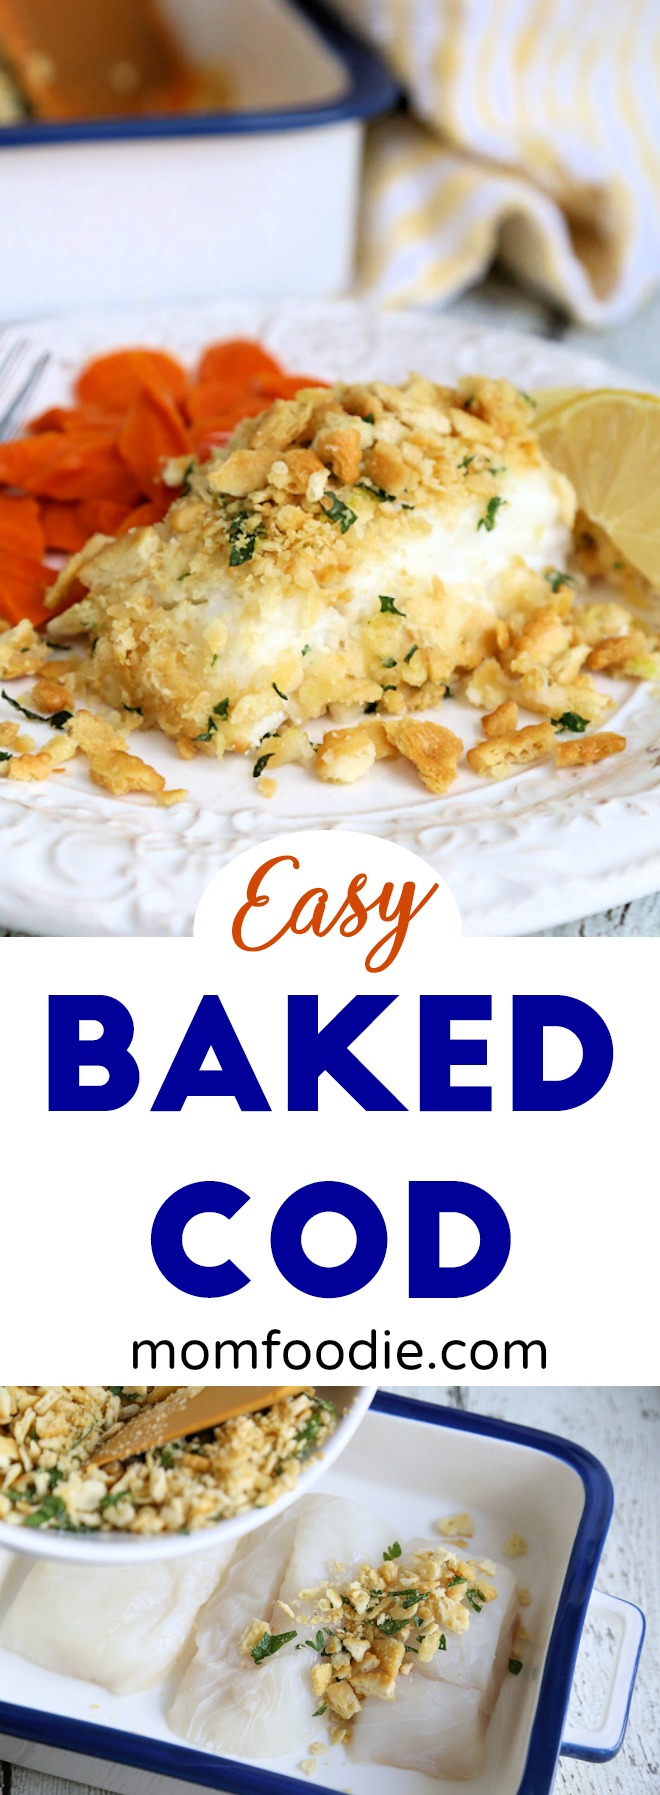 Baked Cod - easy baked cod recipe with craker crumb topping #seafood #cod #fish #fishrecipe